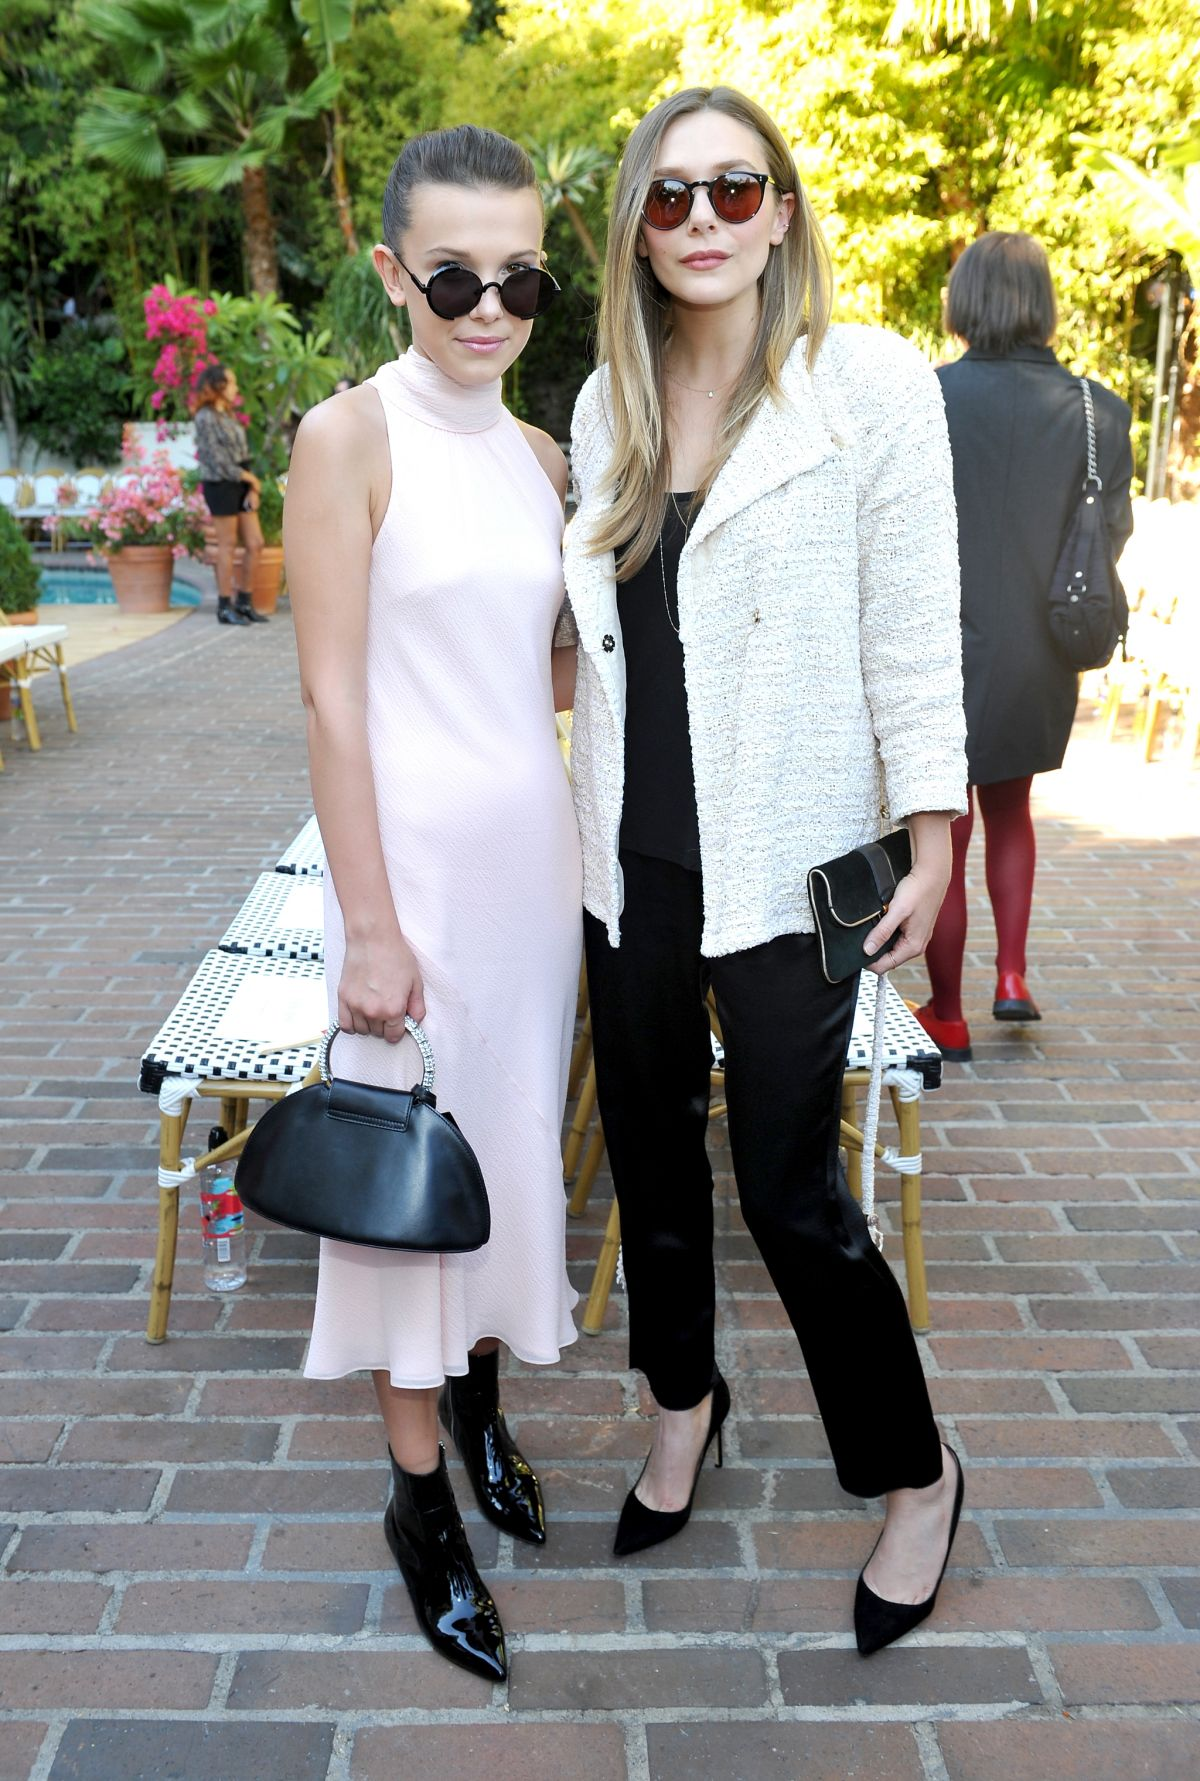 Elizabeth Olsen Attends CFDA/Vogue Fashion Fund Show and Tea at Chateau Marmont in LA